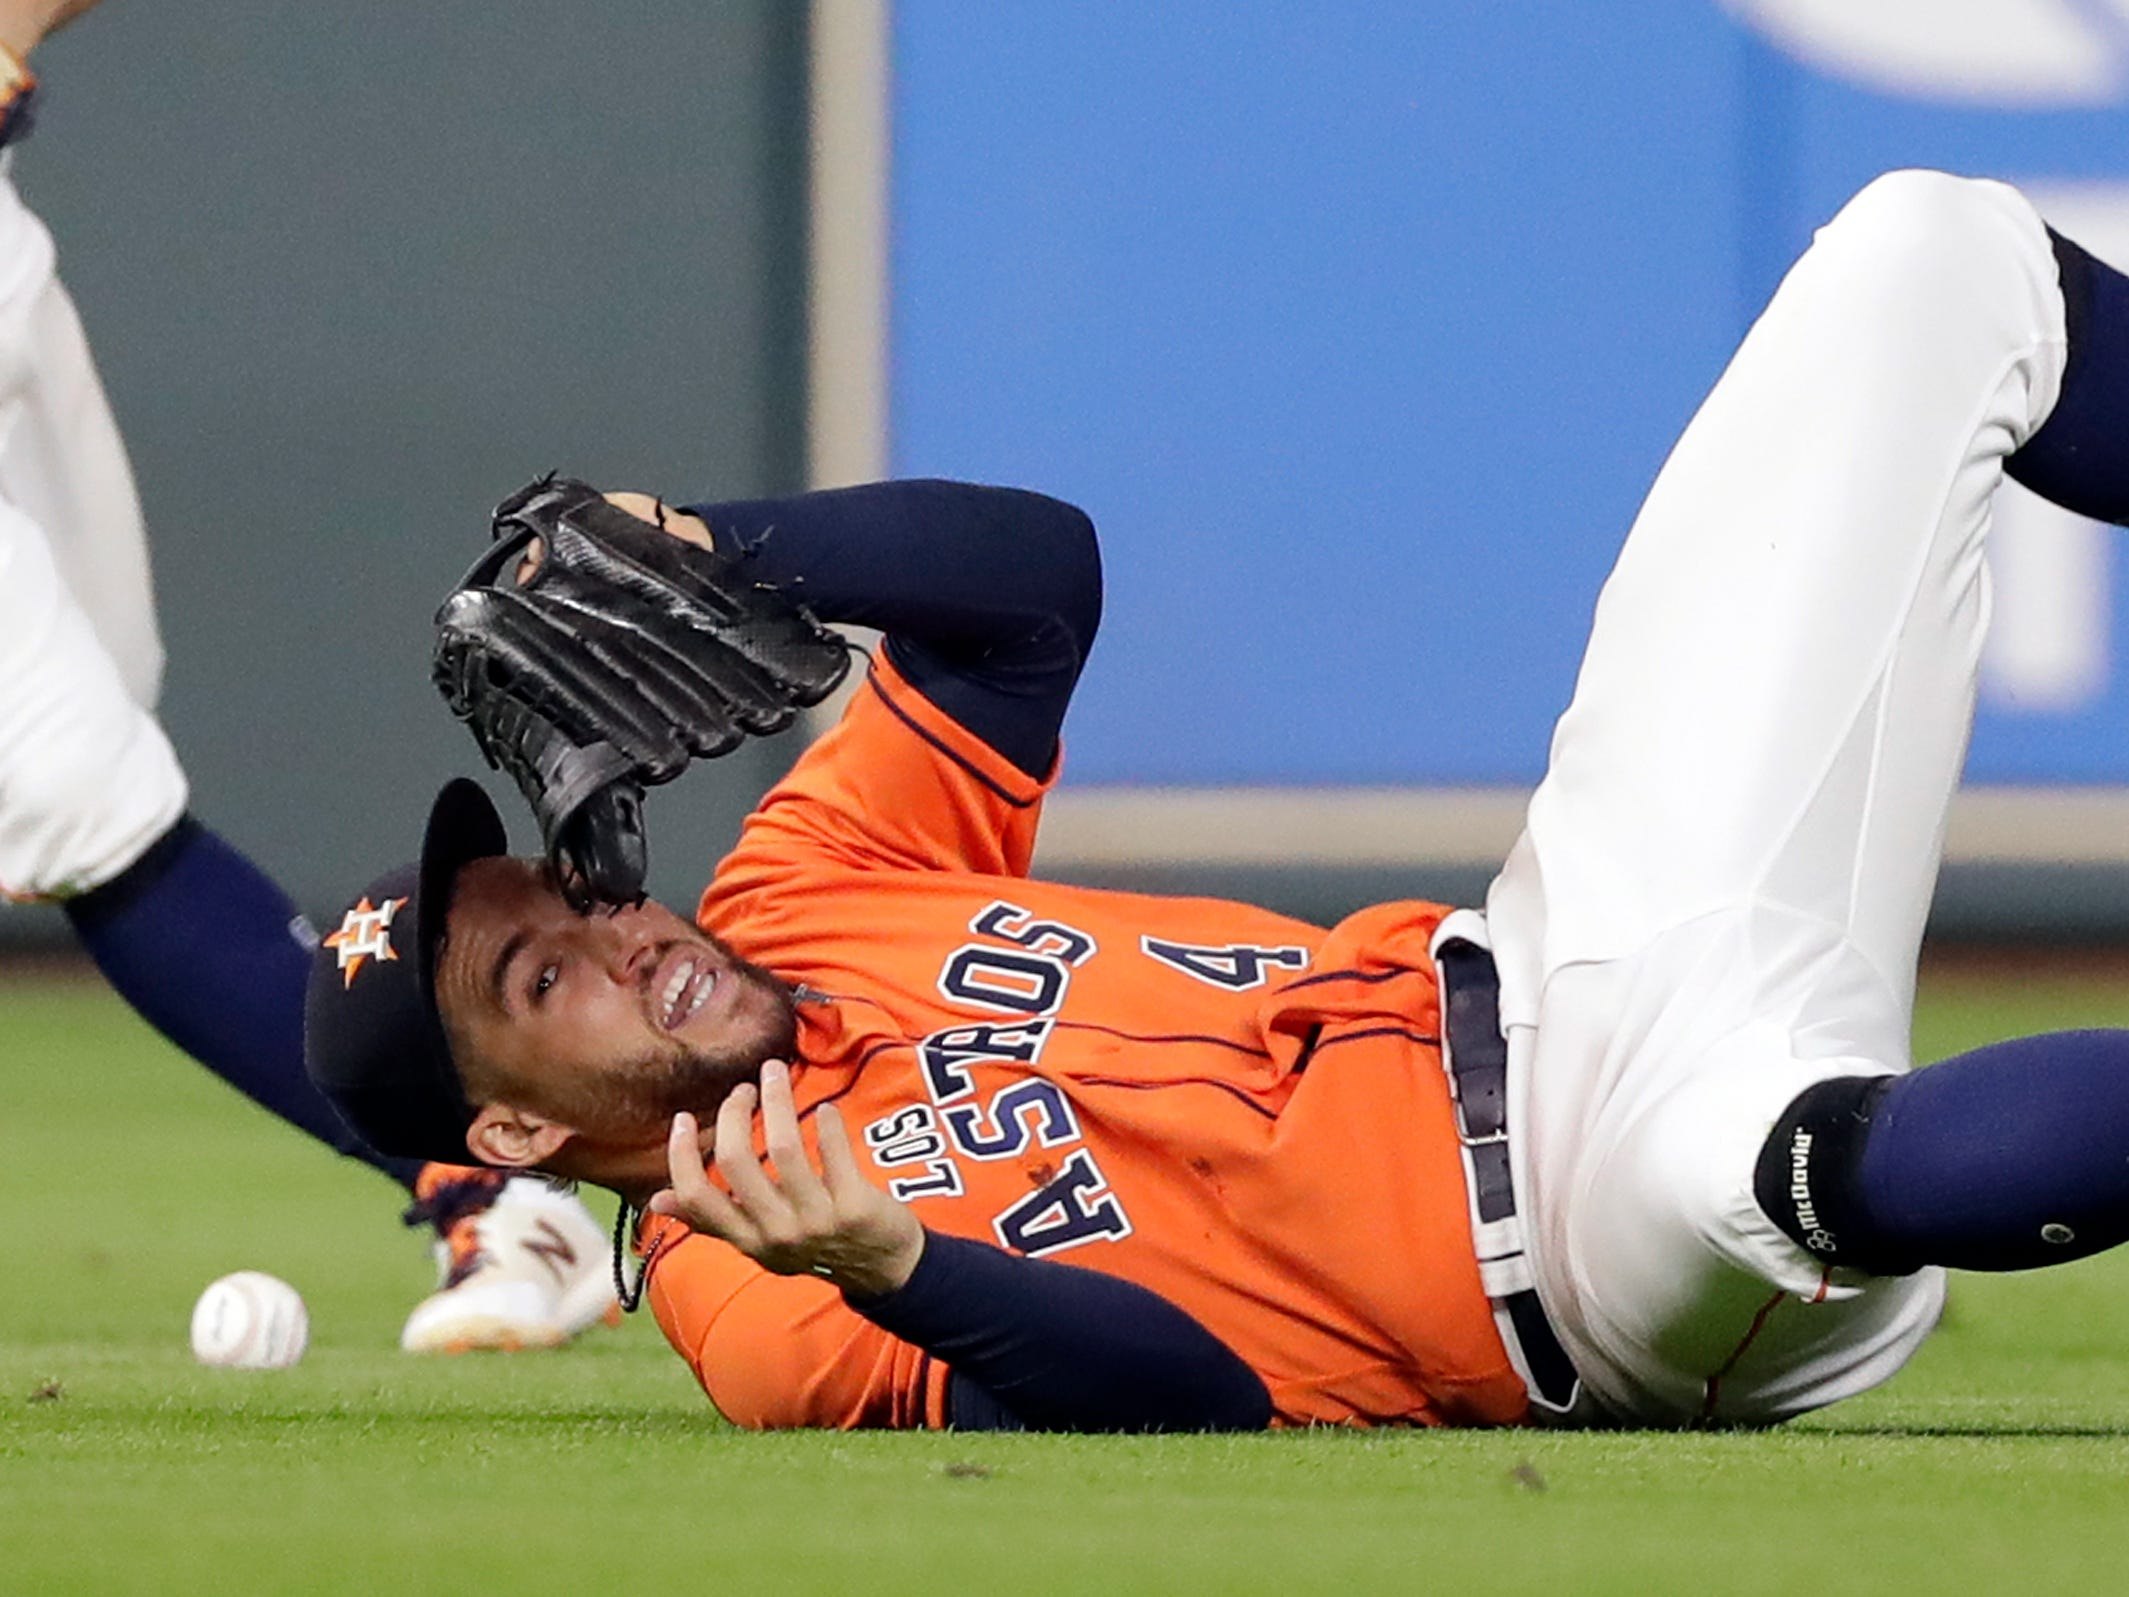 Houston Astros center fielder George Springer (4) tumbles while trying to catch a single by Arizona Diamondbacks' A.J. Pollock during the eighth inning of a baseball game Friday, Sept. 14, 2018, in Houston. Pollock was out at second trying to stretch his hit into a double. (AP Photo/David J. Phillip)